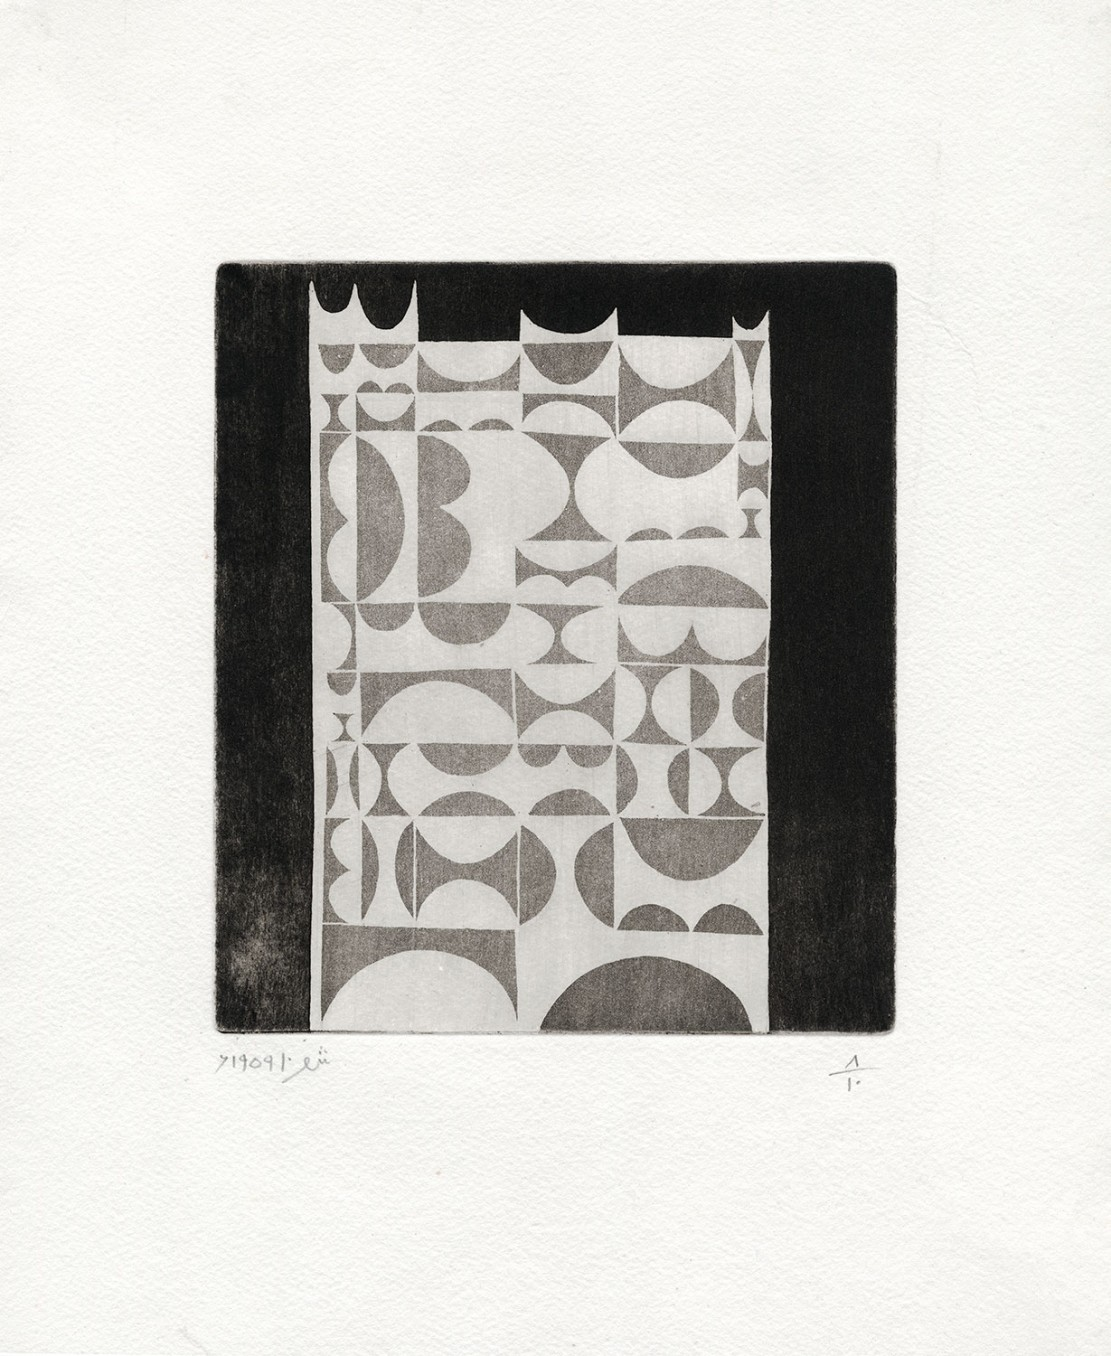 Anwar Jalal Shemza, Untitled, 1959, Etching, 37.8 x 31.1 cm, 14 7/8 x 12 1/4 in, Framed: 41.1 x 36 cm, 16 1/4 x 14 1/4 in